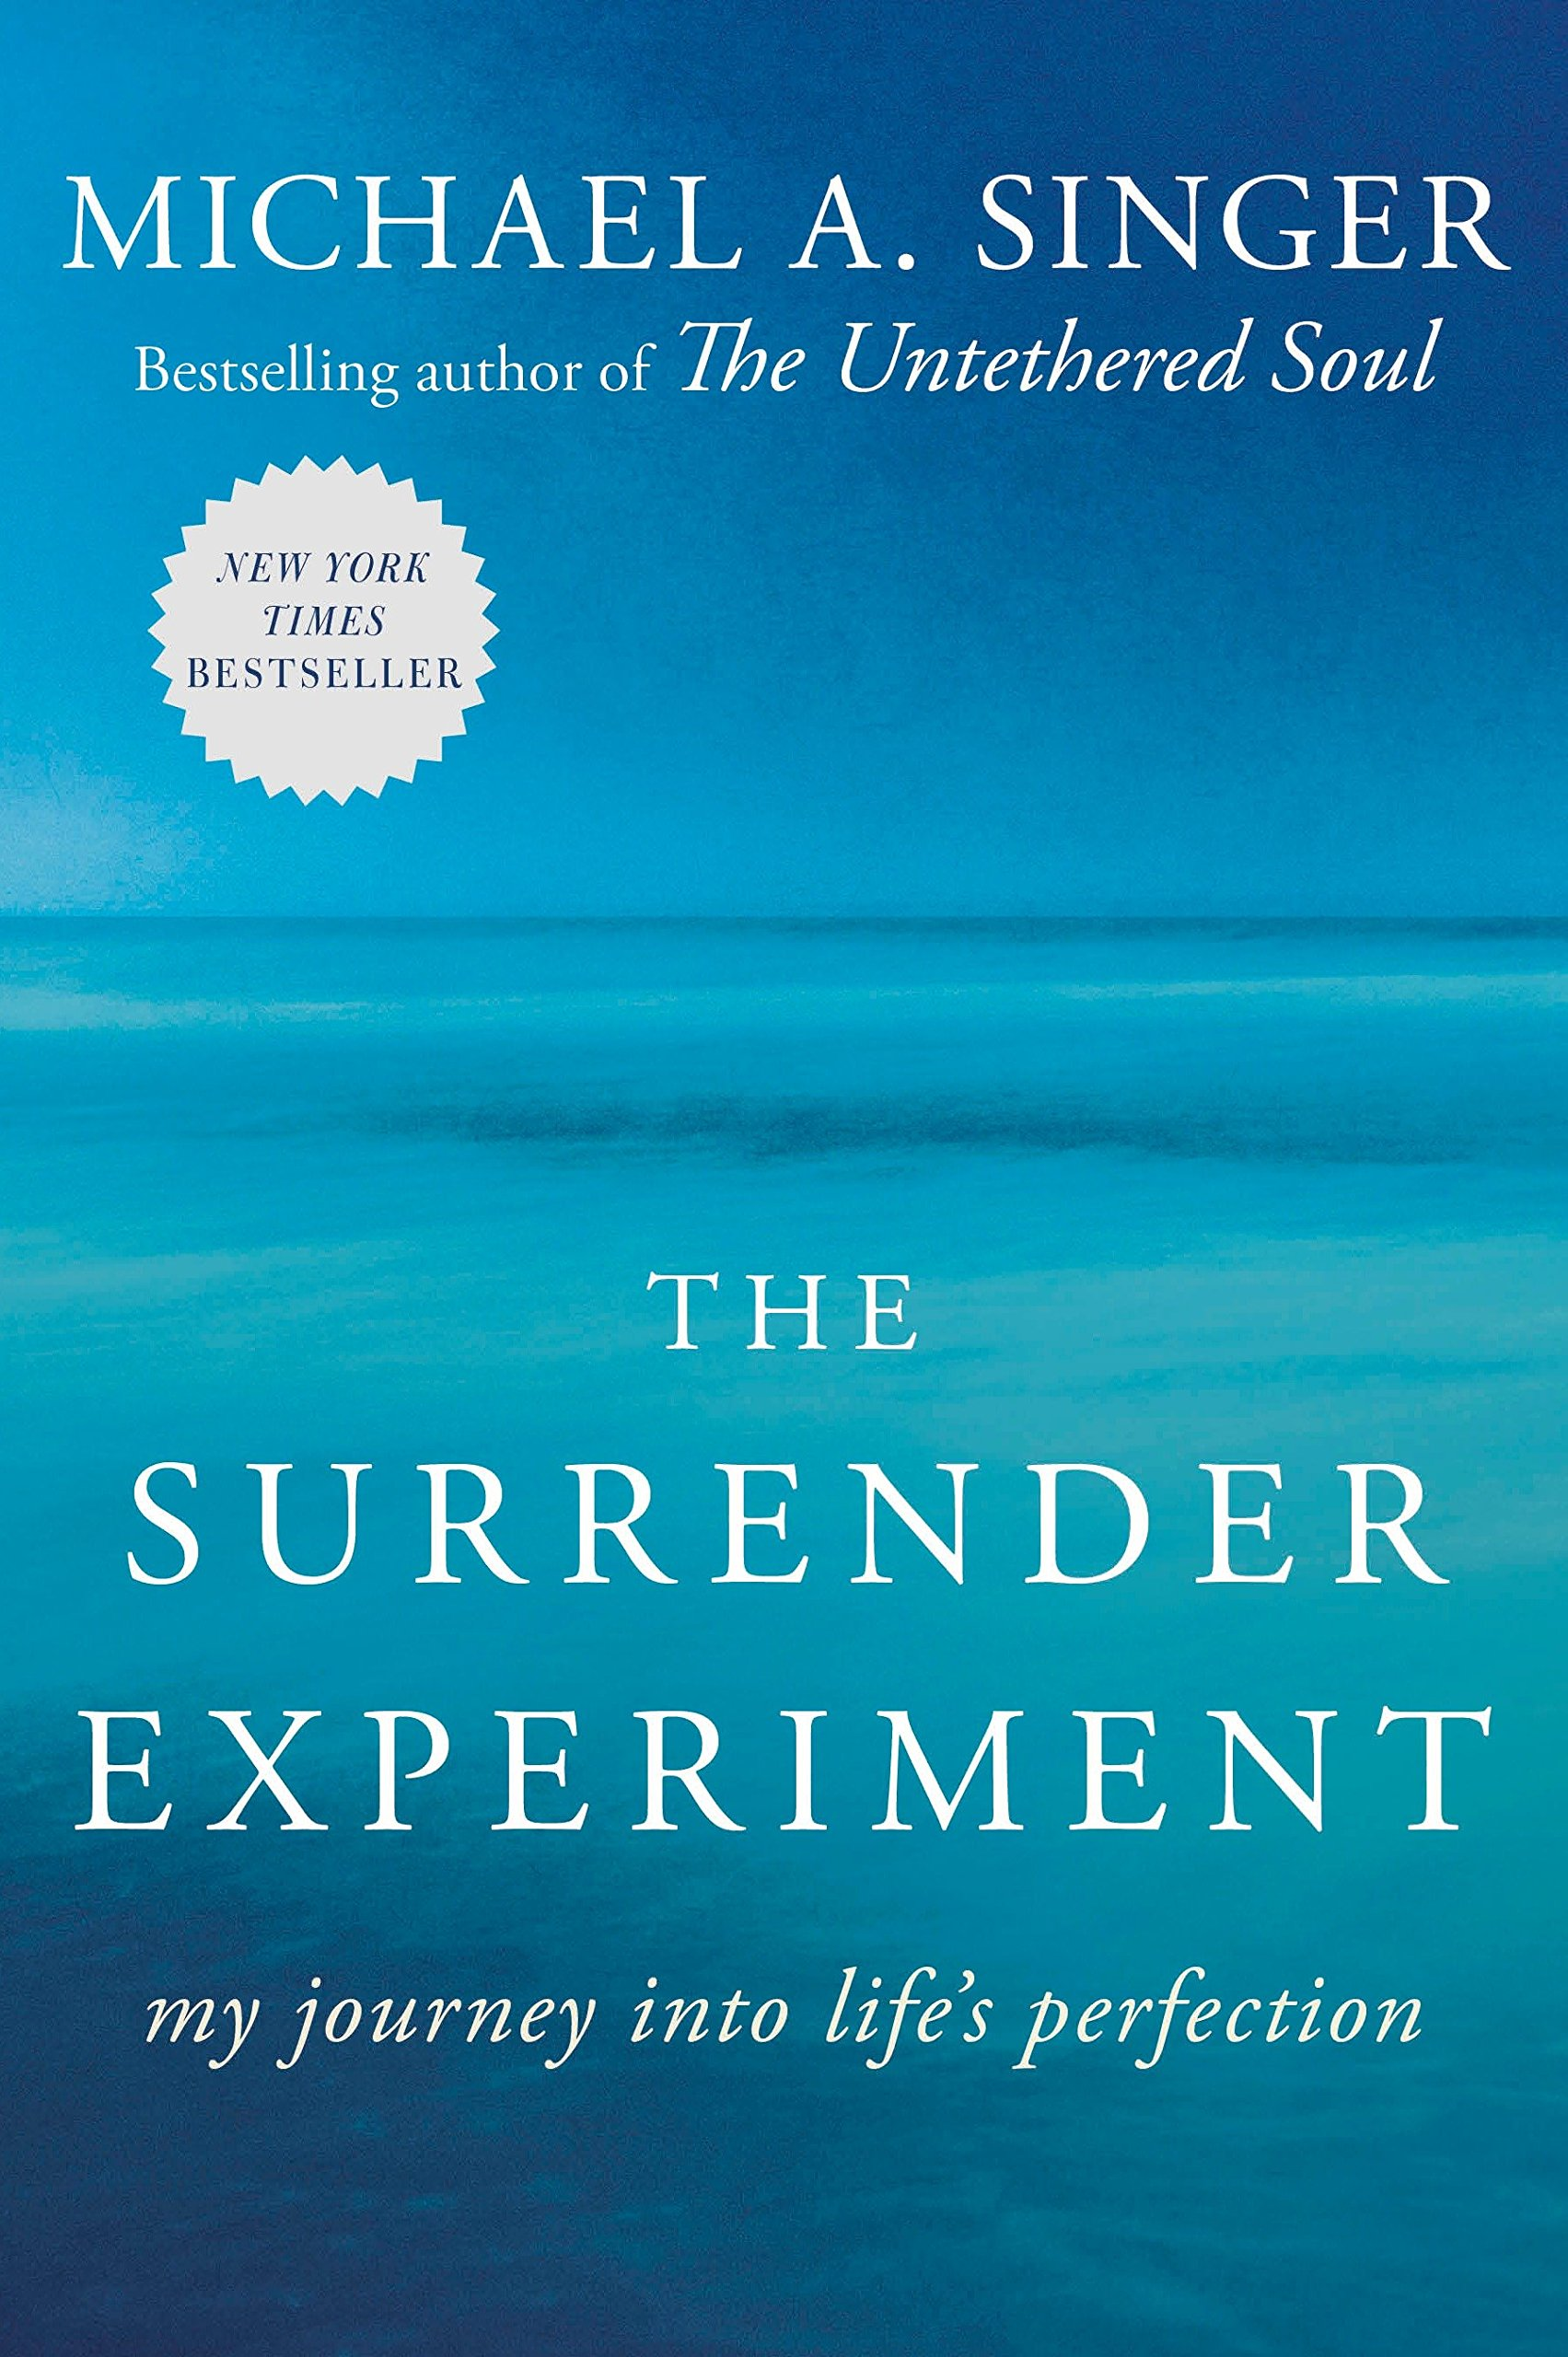 Image result for The Surrender Experiment by Michael Singer